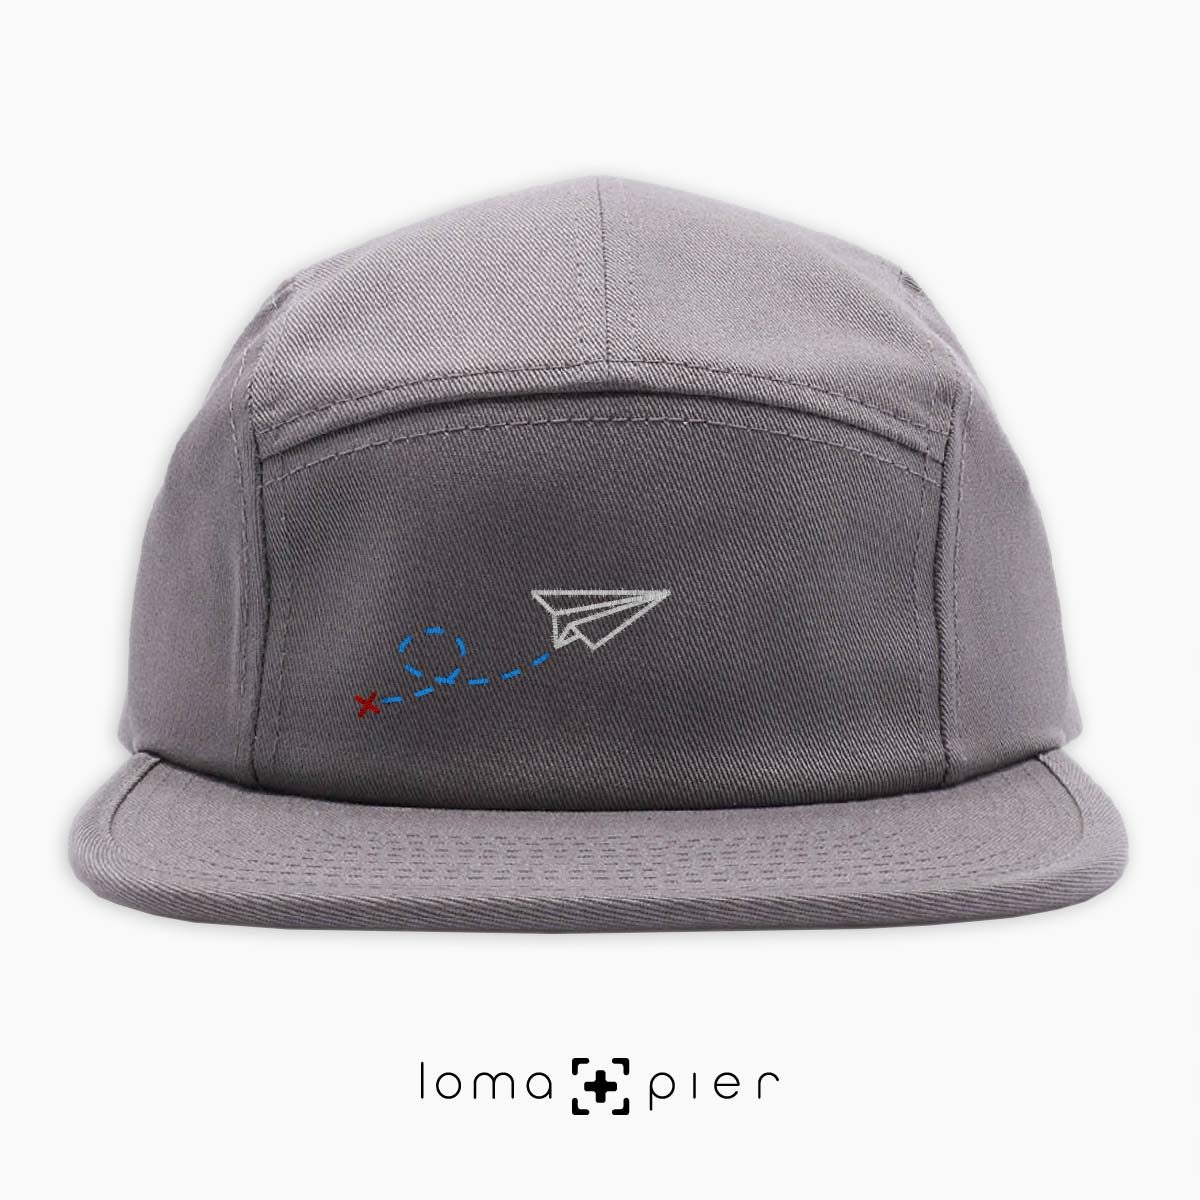 PAPER AIRPLANE icon embroidered on a grey cotton 5-panel hat by loma+pier hat store